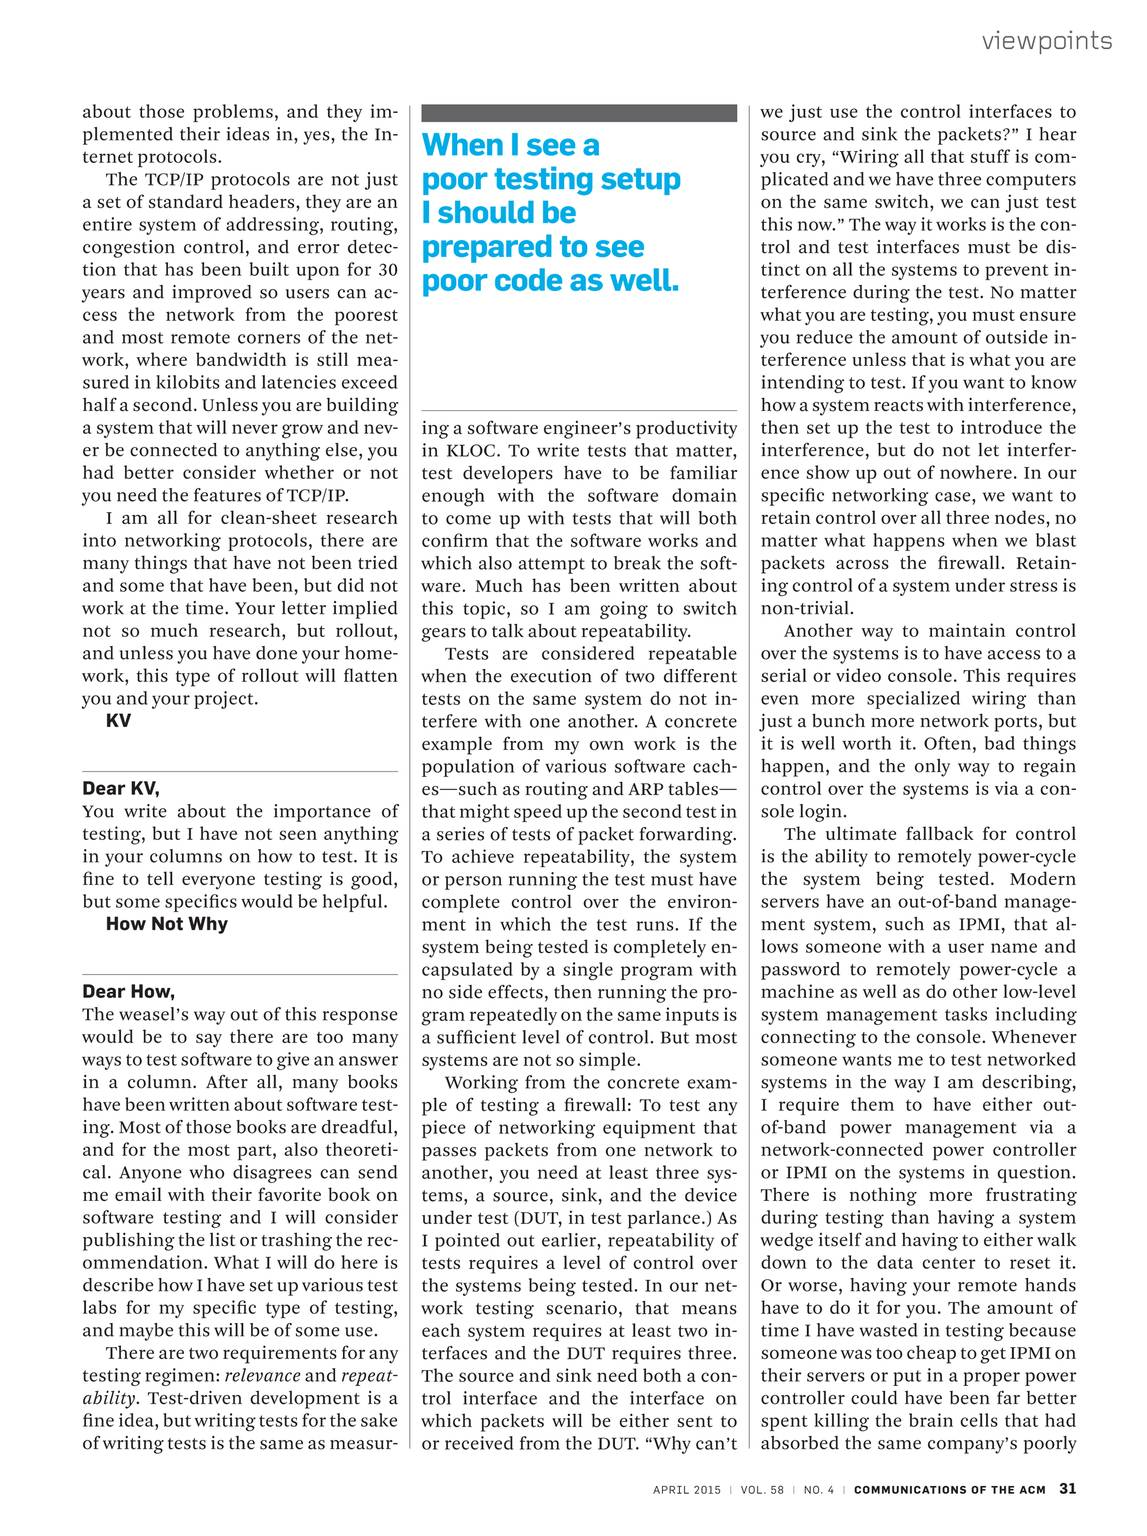 Communications of the ACM - April 2015 - page 30